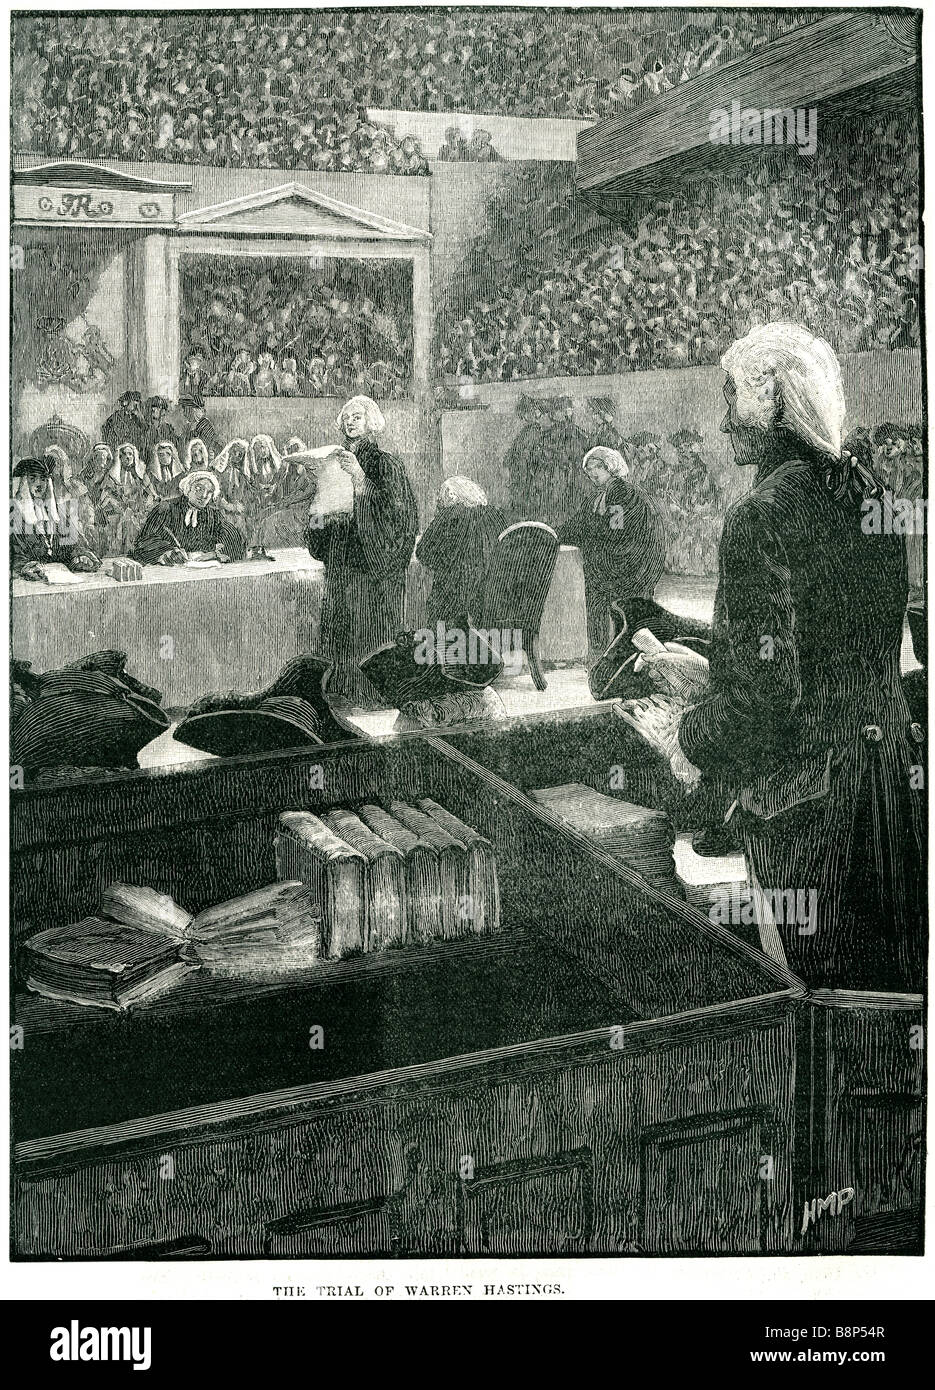 trial warren hastings December 1732 22 August 1818 Governor-General of Bengal Privy Councillor - Stock Image